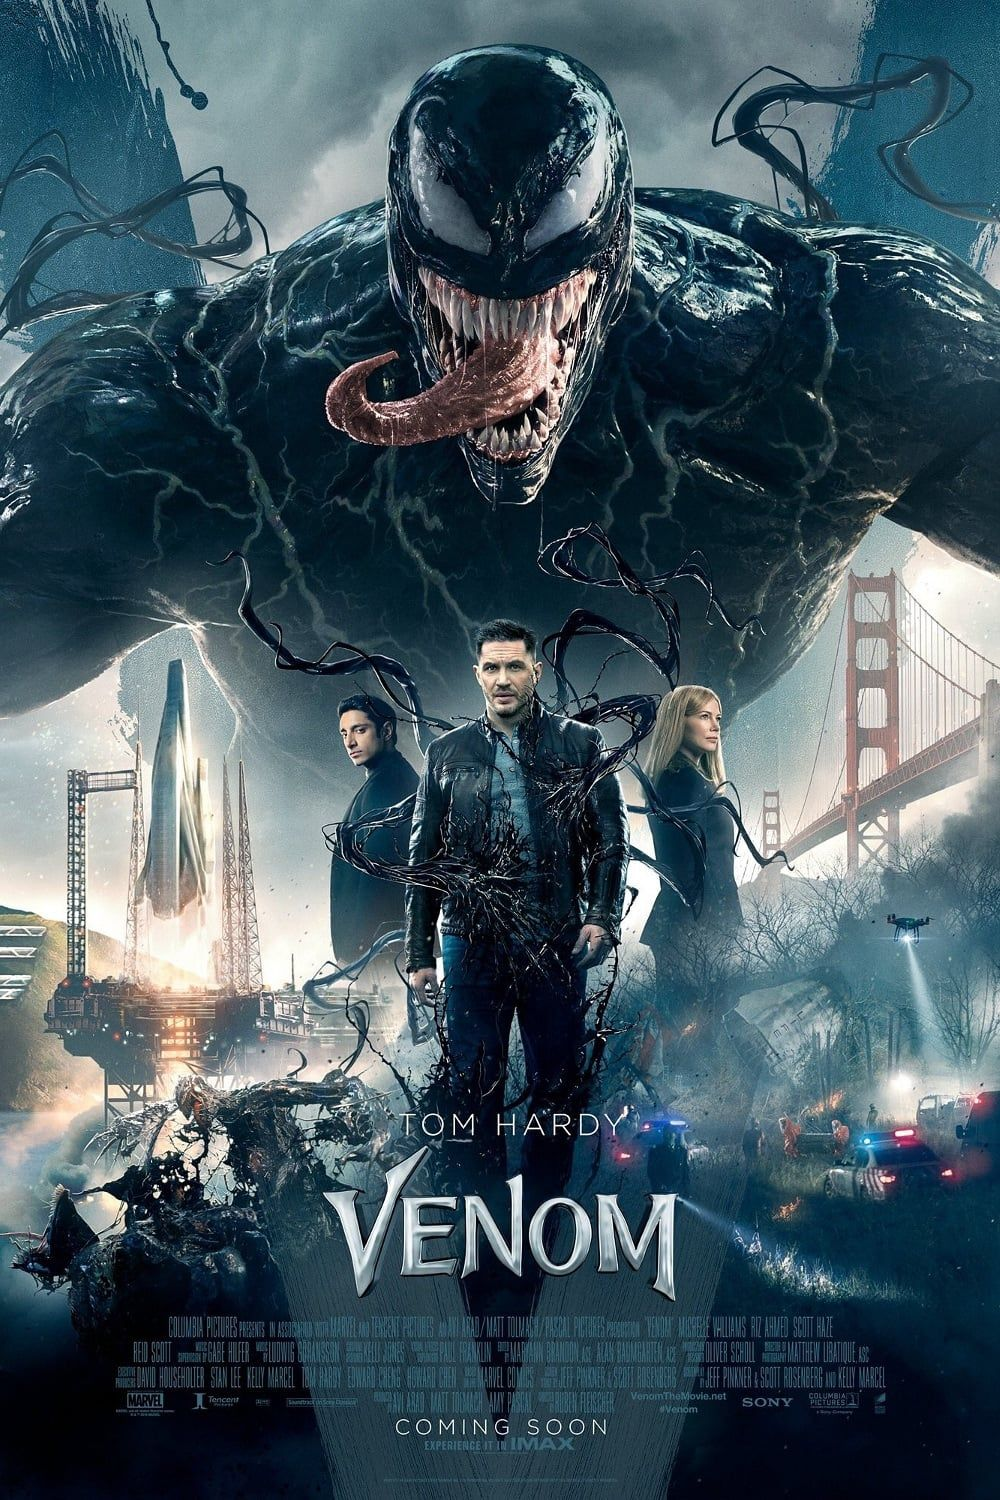 Venom 2018 Pelicula Pleta Espanol Latino 42 Likes After Surviving A Watch Venom 2018 Full Movies Online Free Watch Now Ver Ve Film Venom Venom Movie Venom 2018